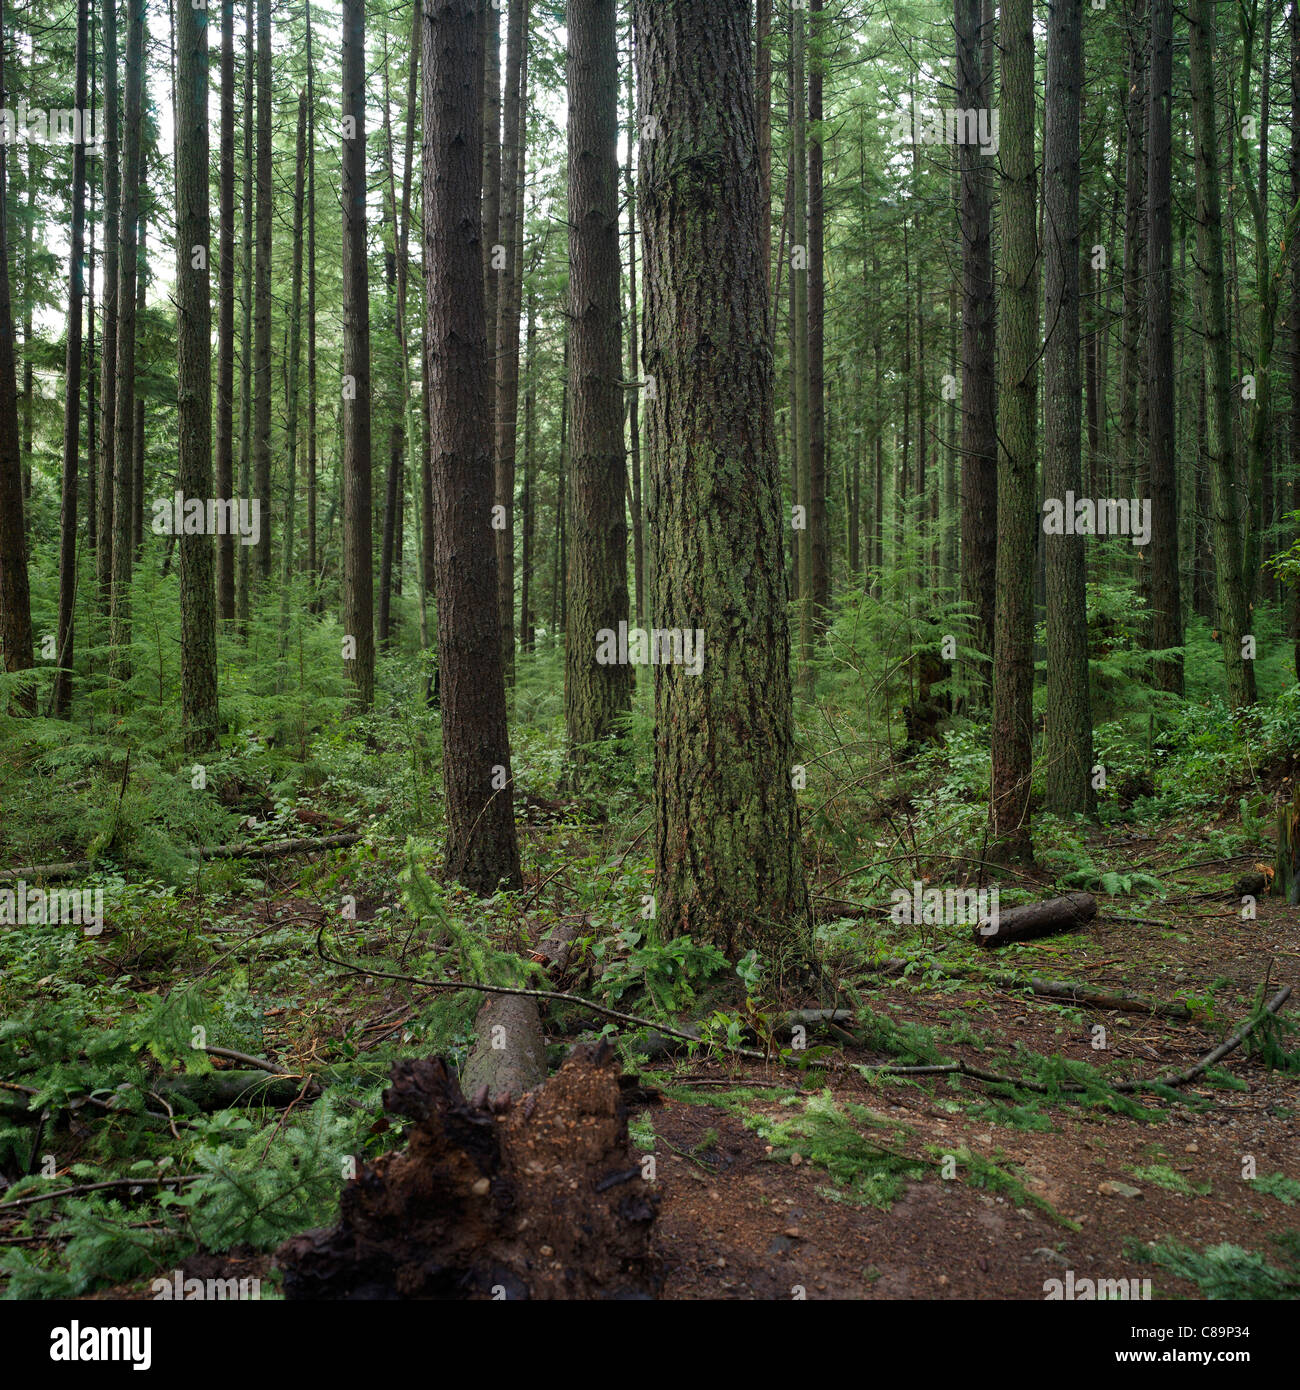 Forest, Vancouver, Canada - Pacific Spirit Regional Park - Stock Image